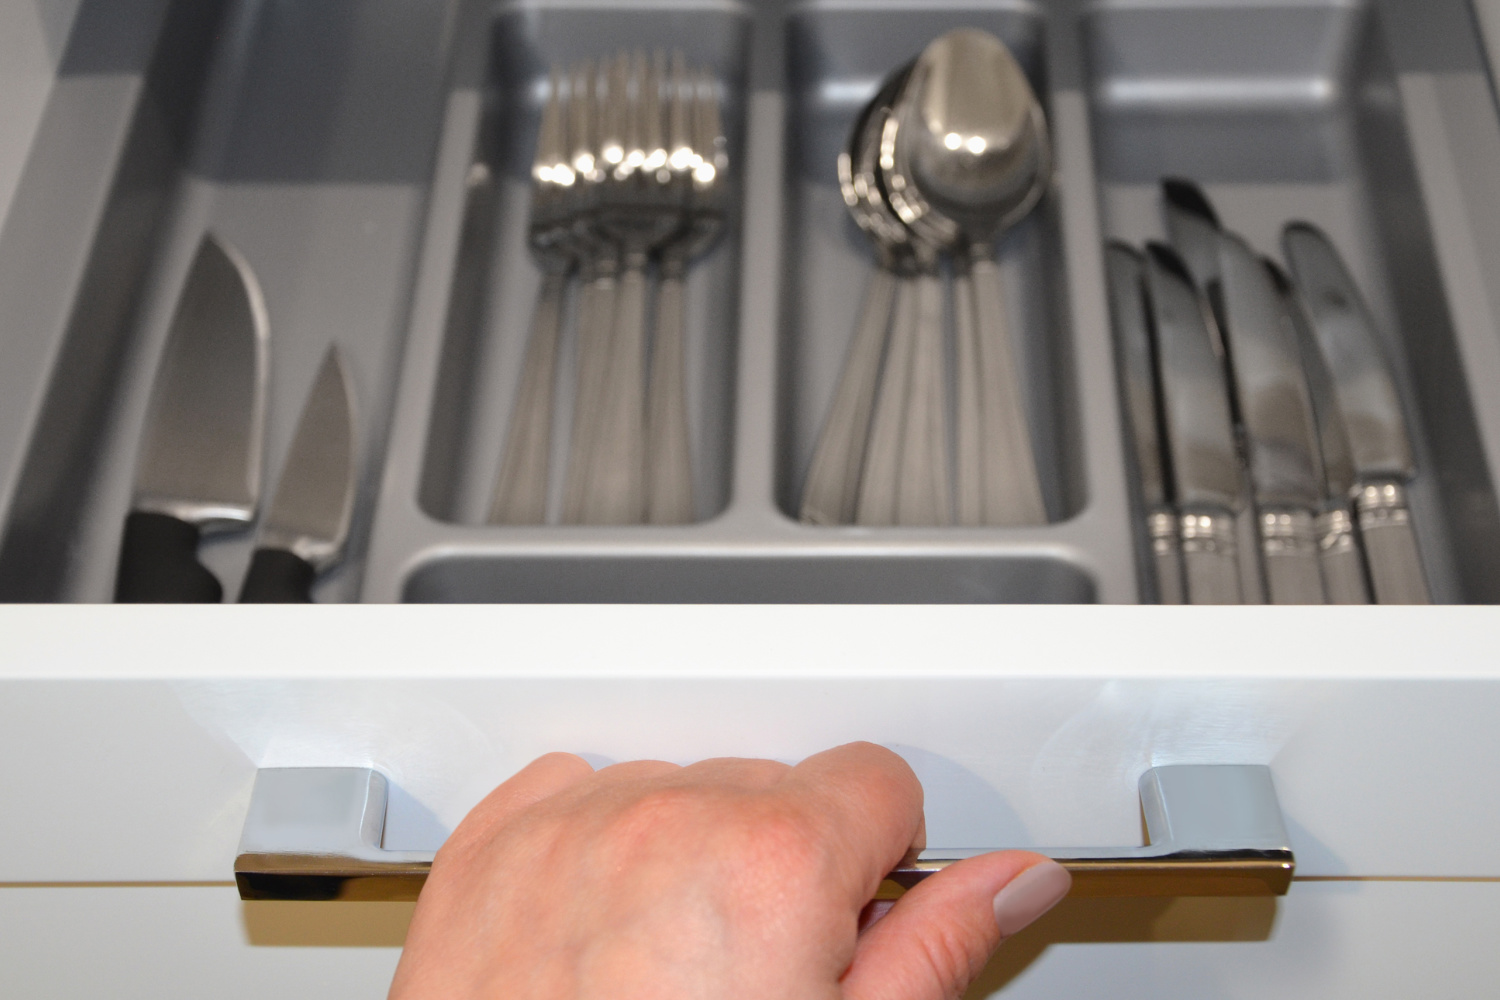 a silverware drawer. Kitchen clutter solutions to organize your home and kitchen